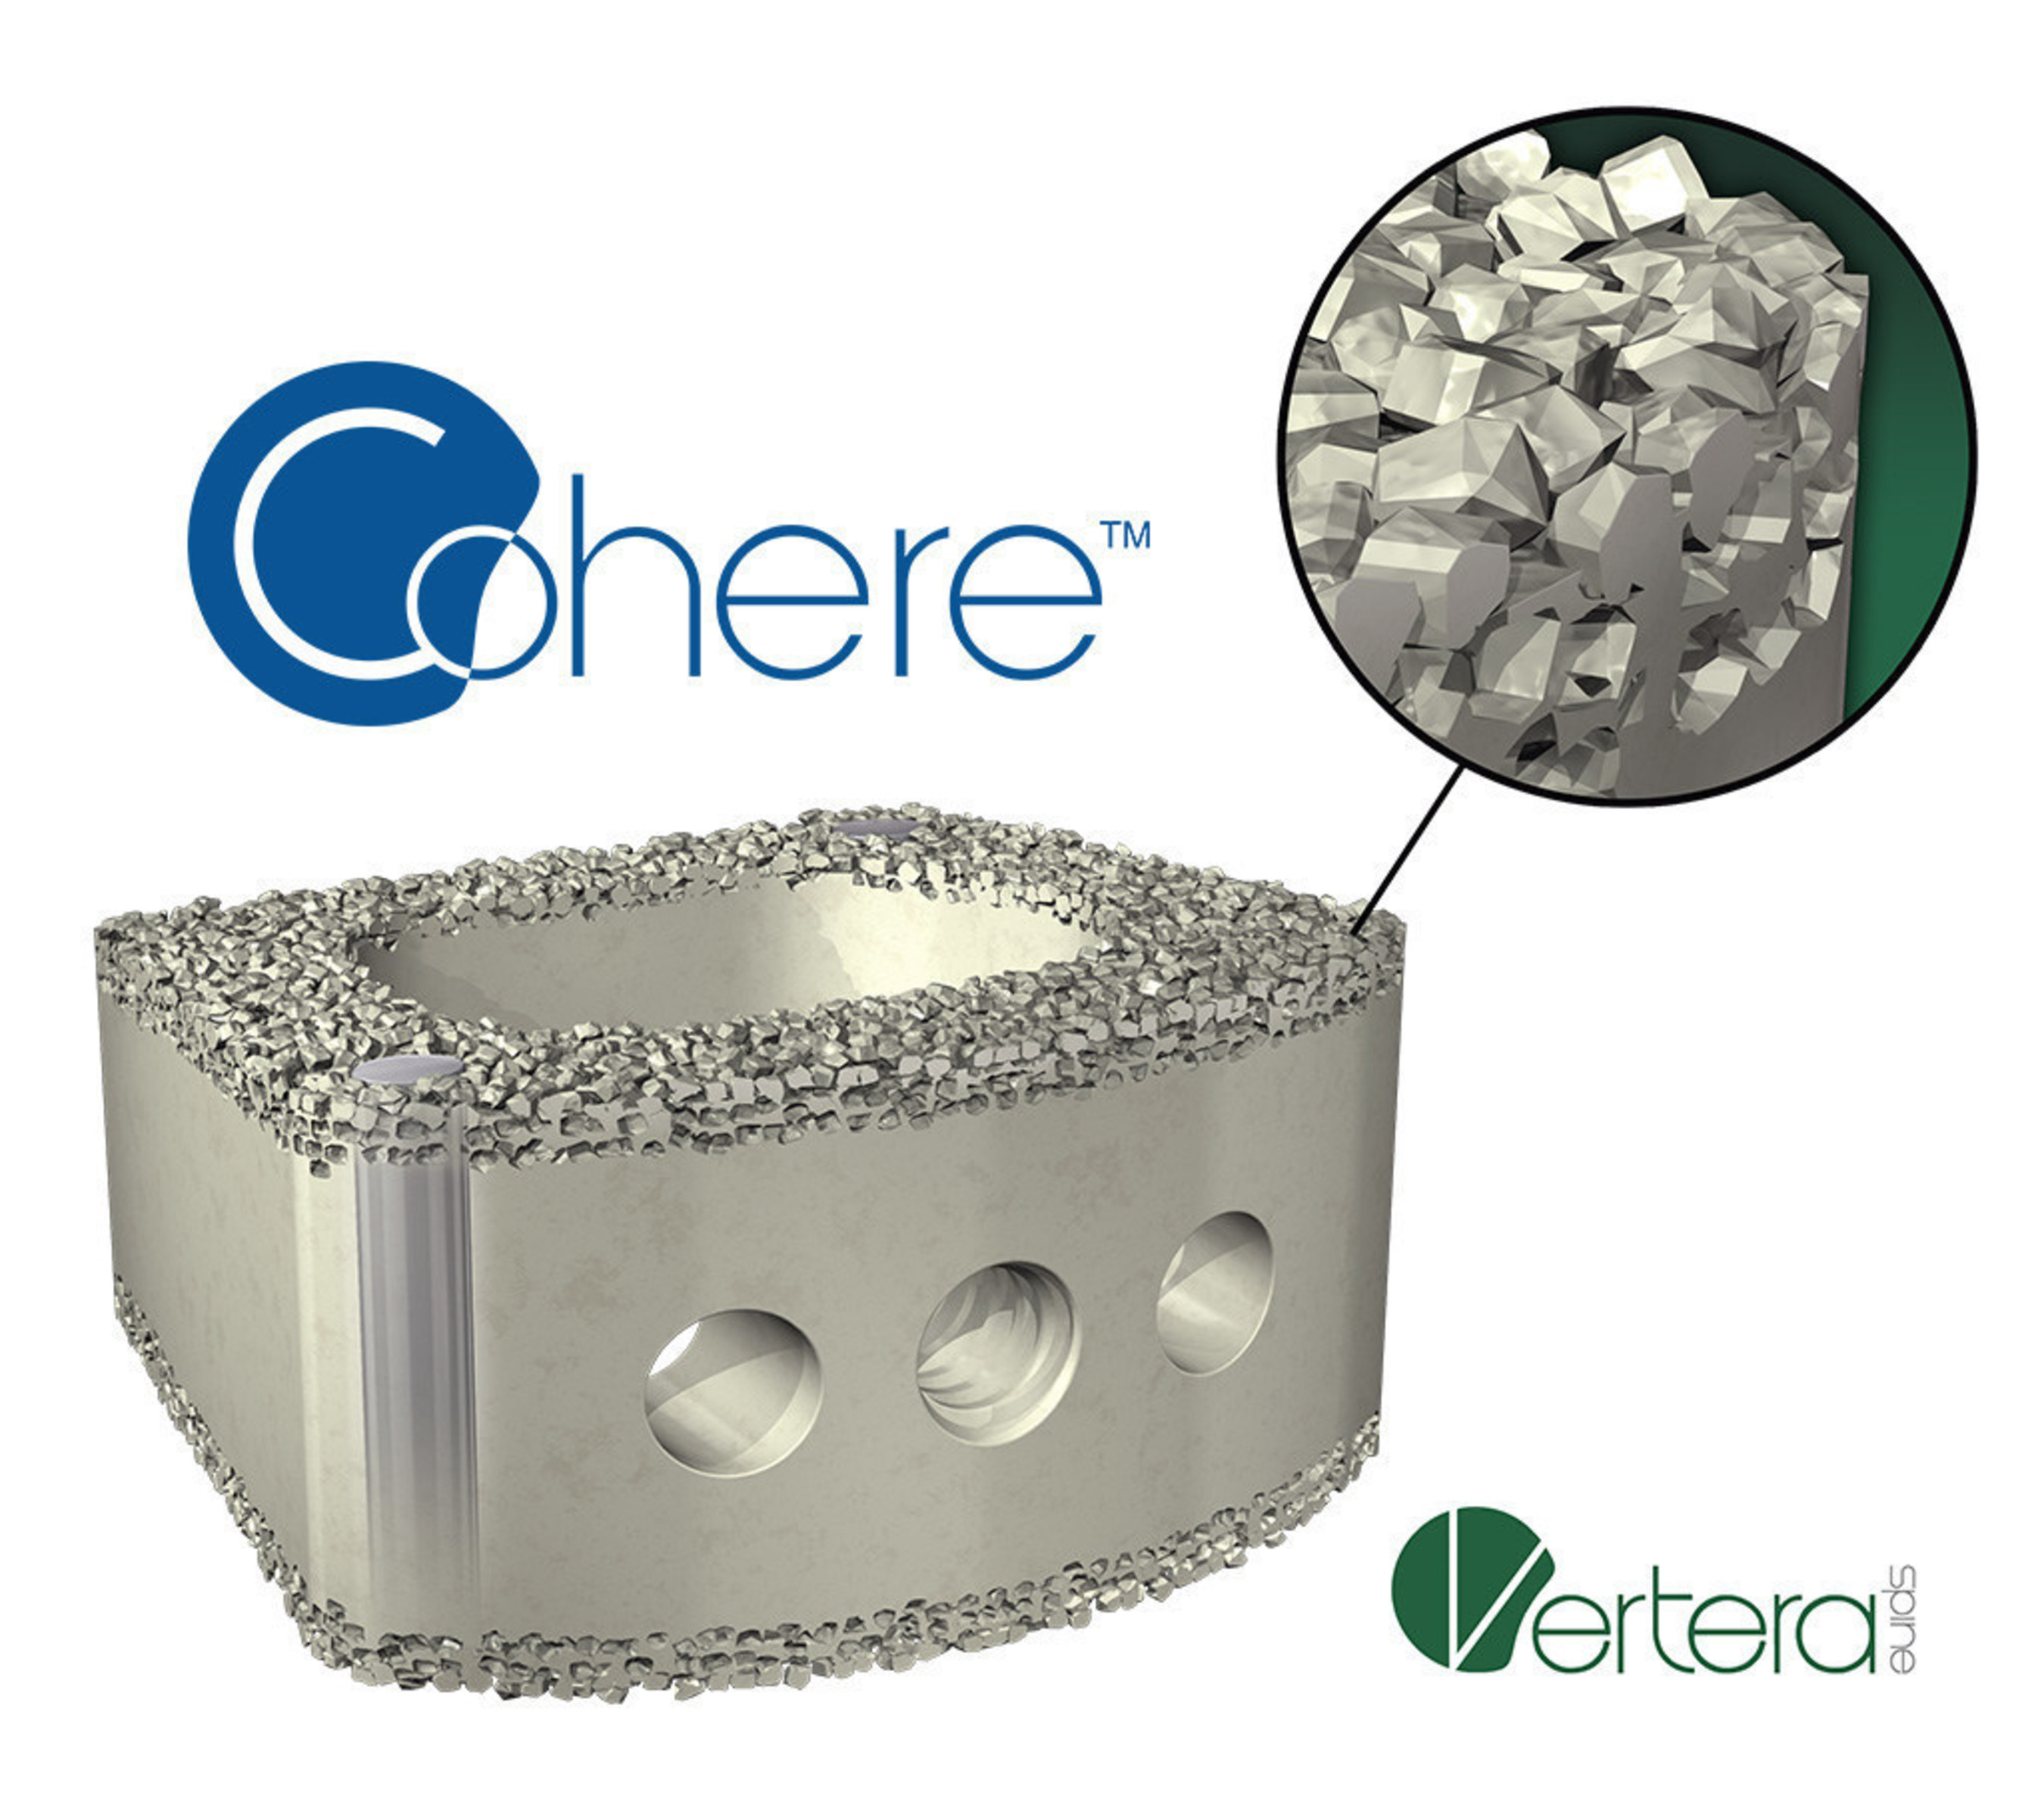 Vertera Spine Announces FDA Clearance of the First Surface Porous PEEK Interbody Fusion Device